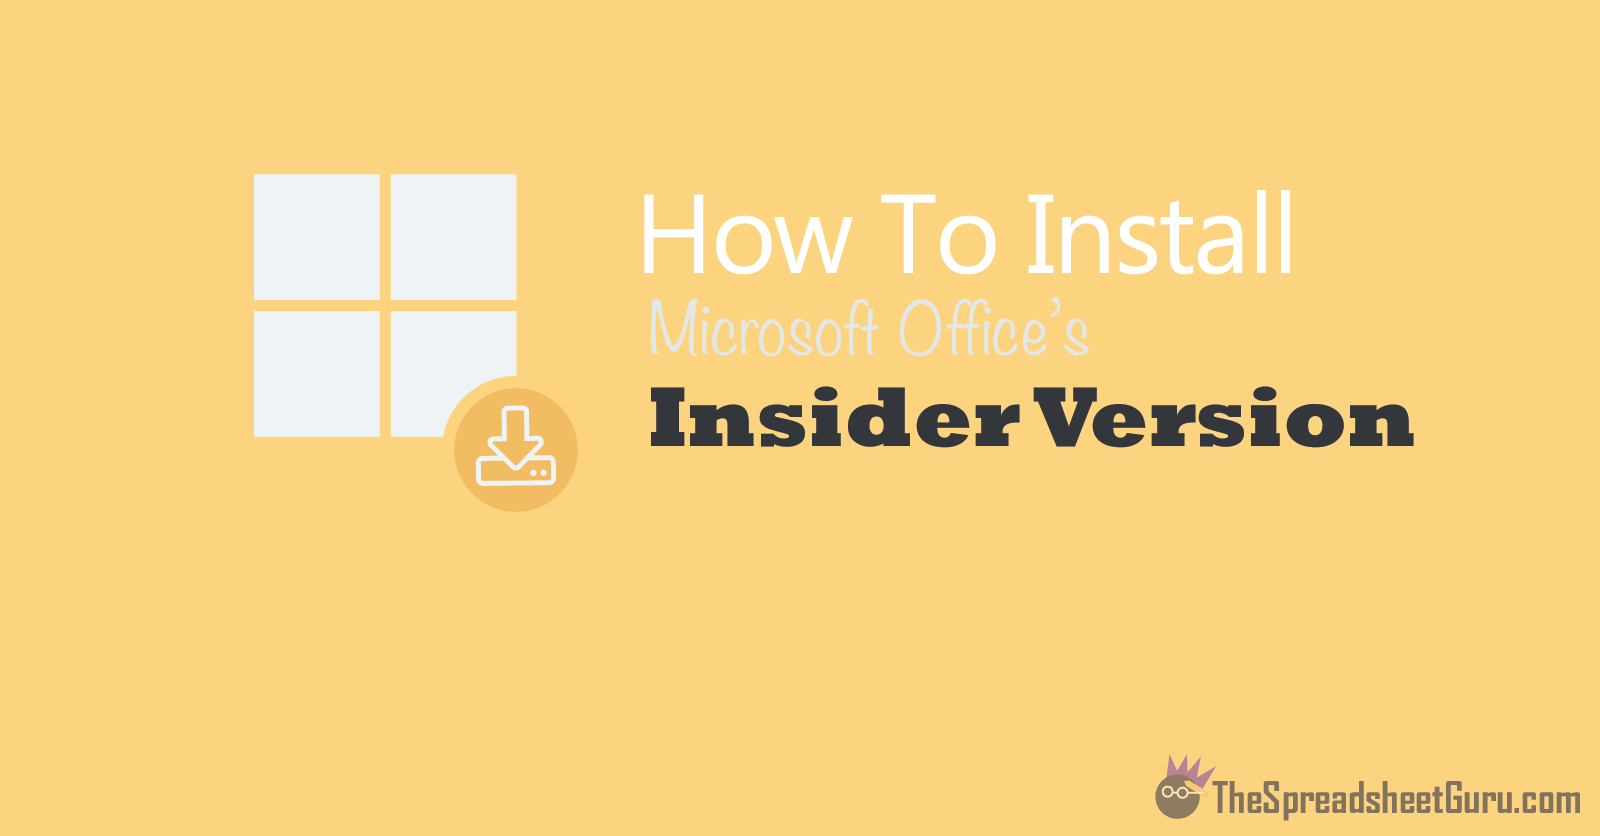 How To Install Microsoft Office Insider Version